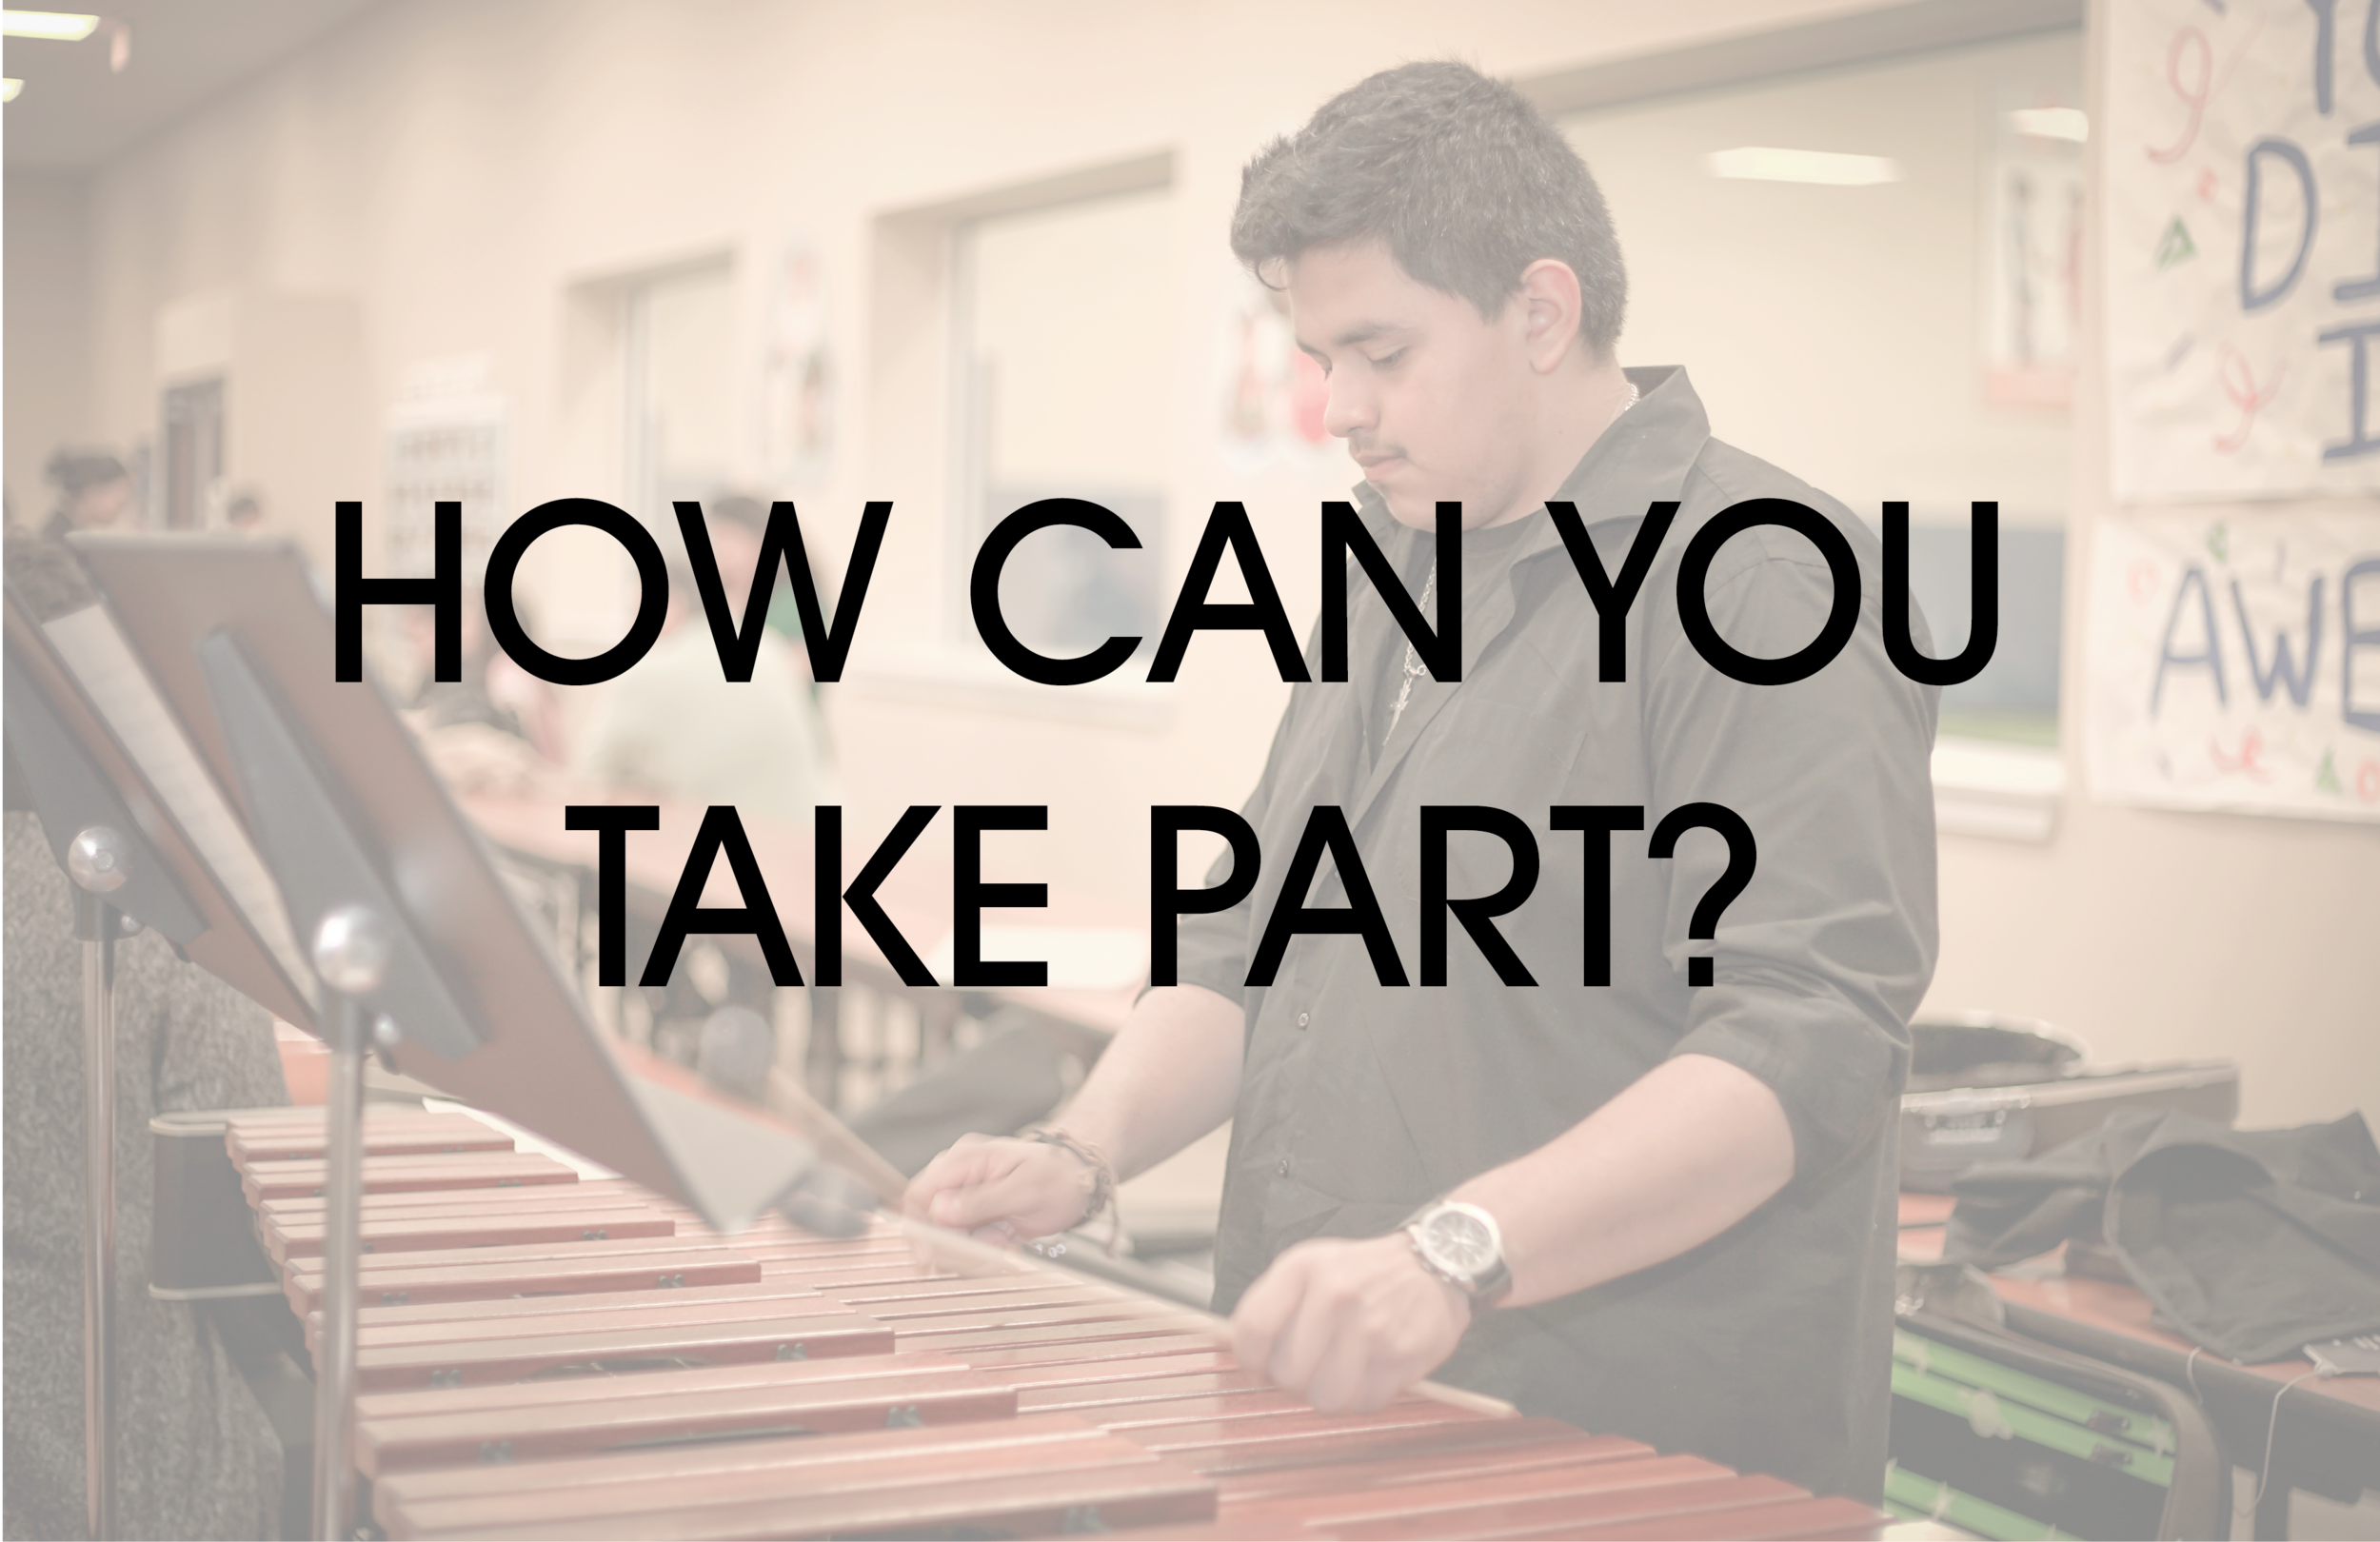 Donating an instrument is easy. Just drop it off with us, fill in a few boxes online, and provide a young person with the opportunity to study music. We will send you a tax receipt after the drive ends.